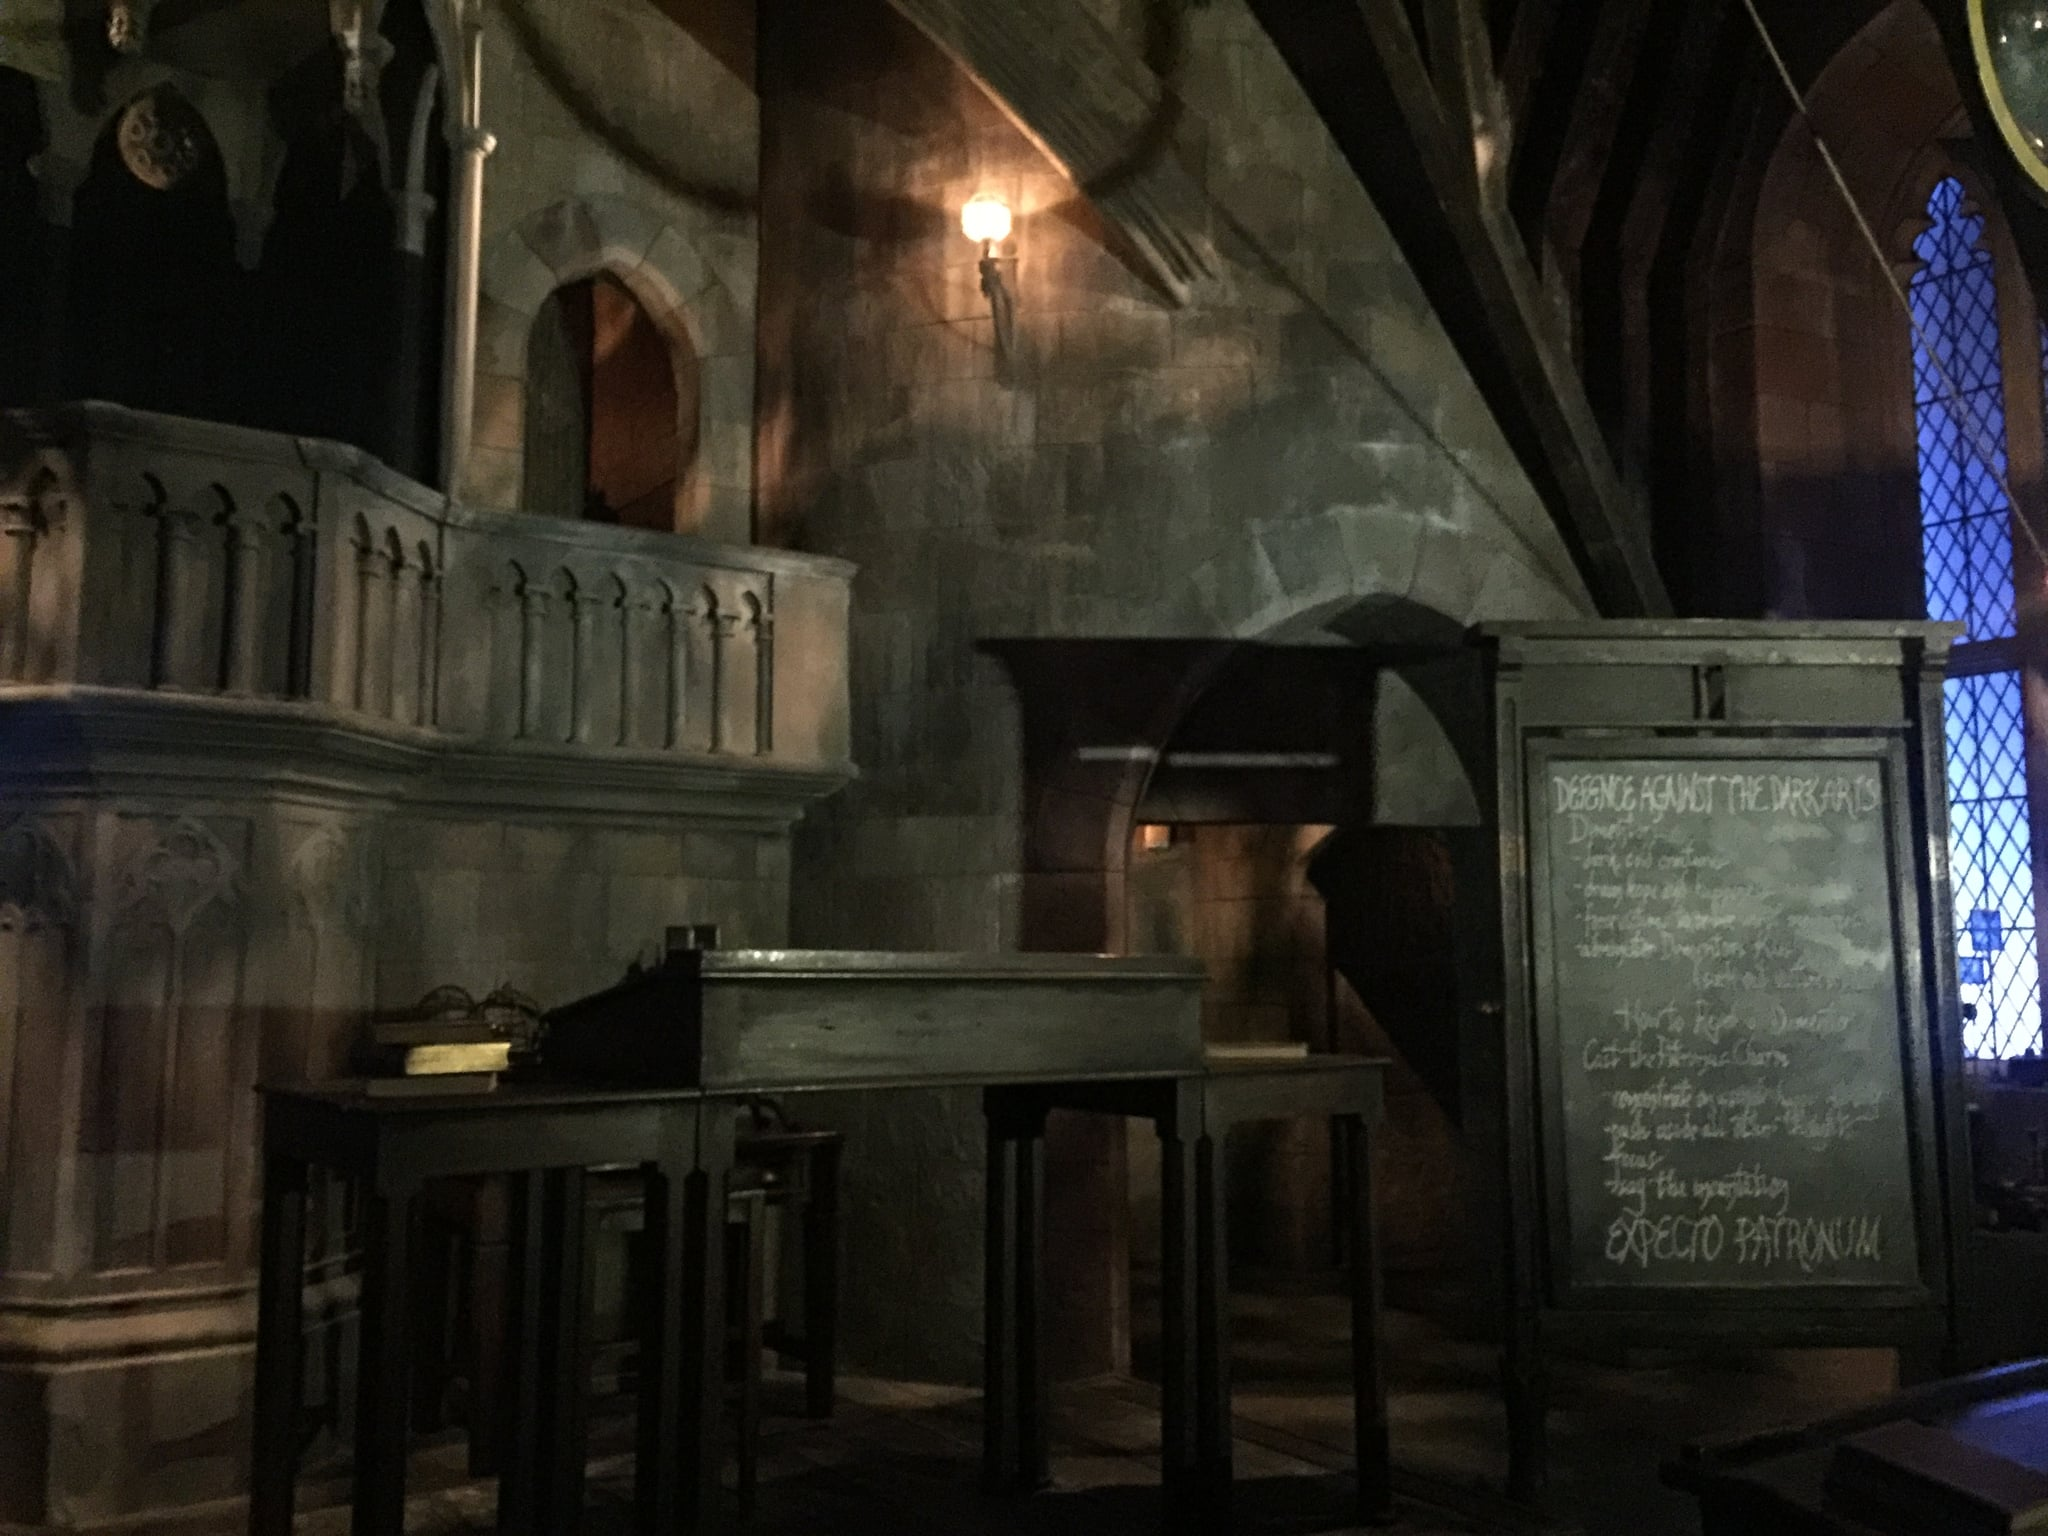 The Chalkboard And Desks From The Defense Against The Dark Arts Classroom The Harry Potter Movie Artifacts You Have To See If You Head To The New Wizarding World Popsugar